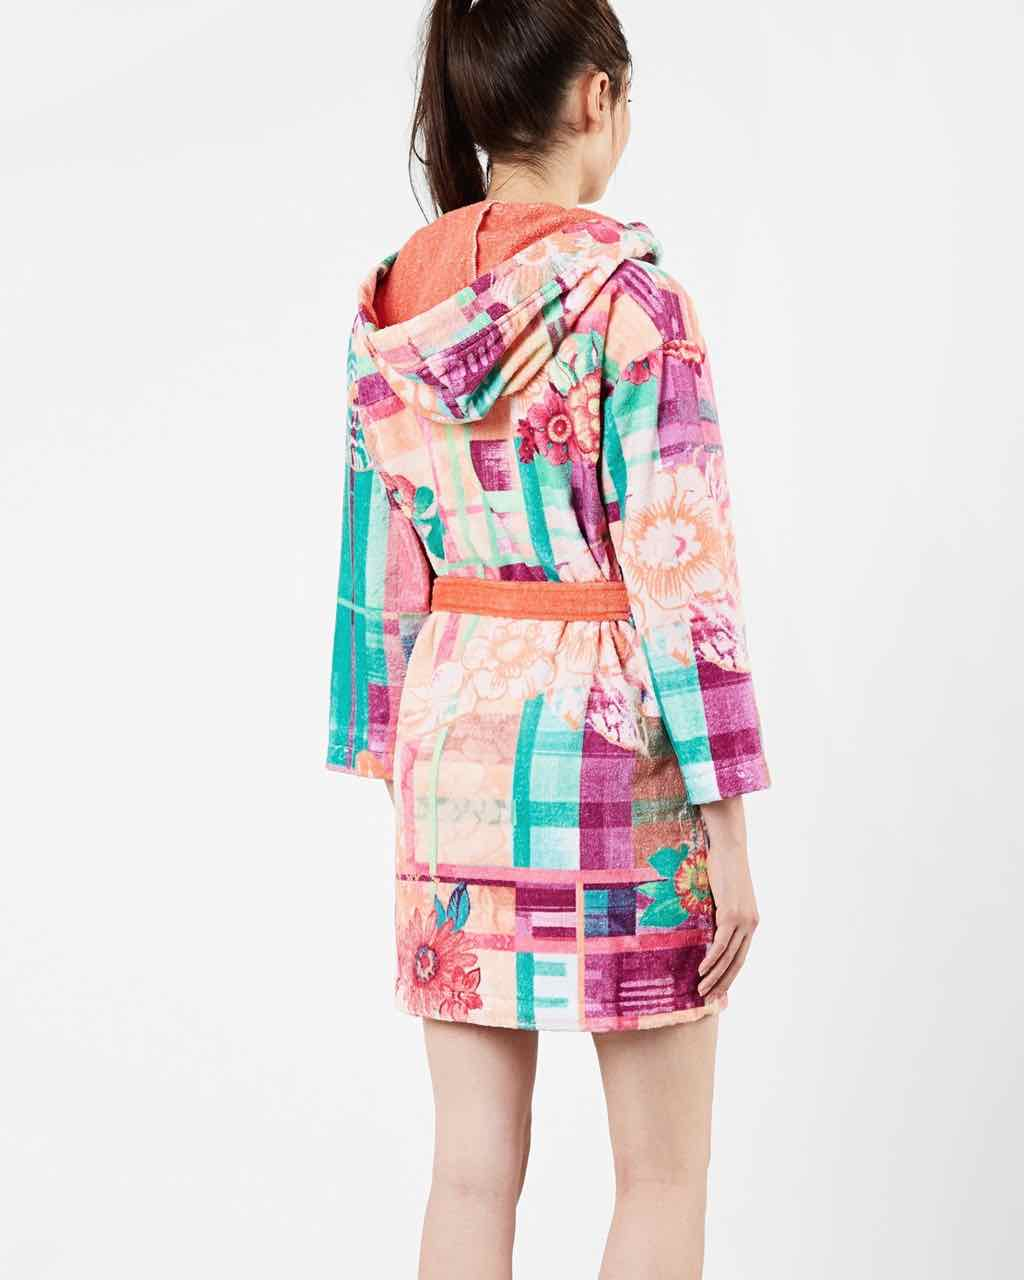 DESIGUAL Bathrobe LOVE TARTAN 17WHBT5 Buy Online  6f07ece5b